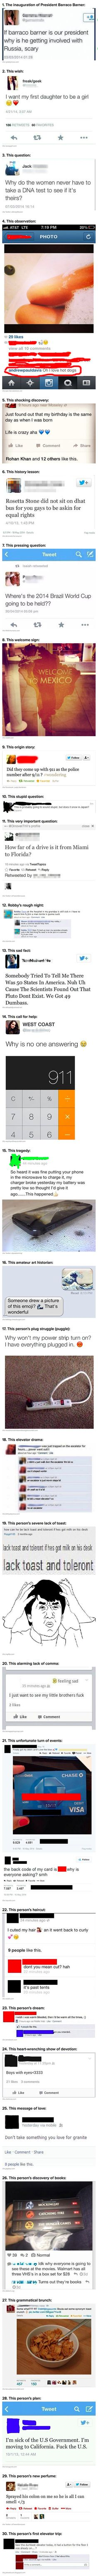 Here are 30 of the dumbest, yet real, things that people have posted online.